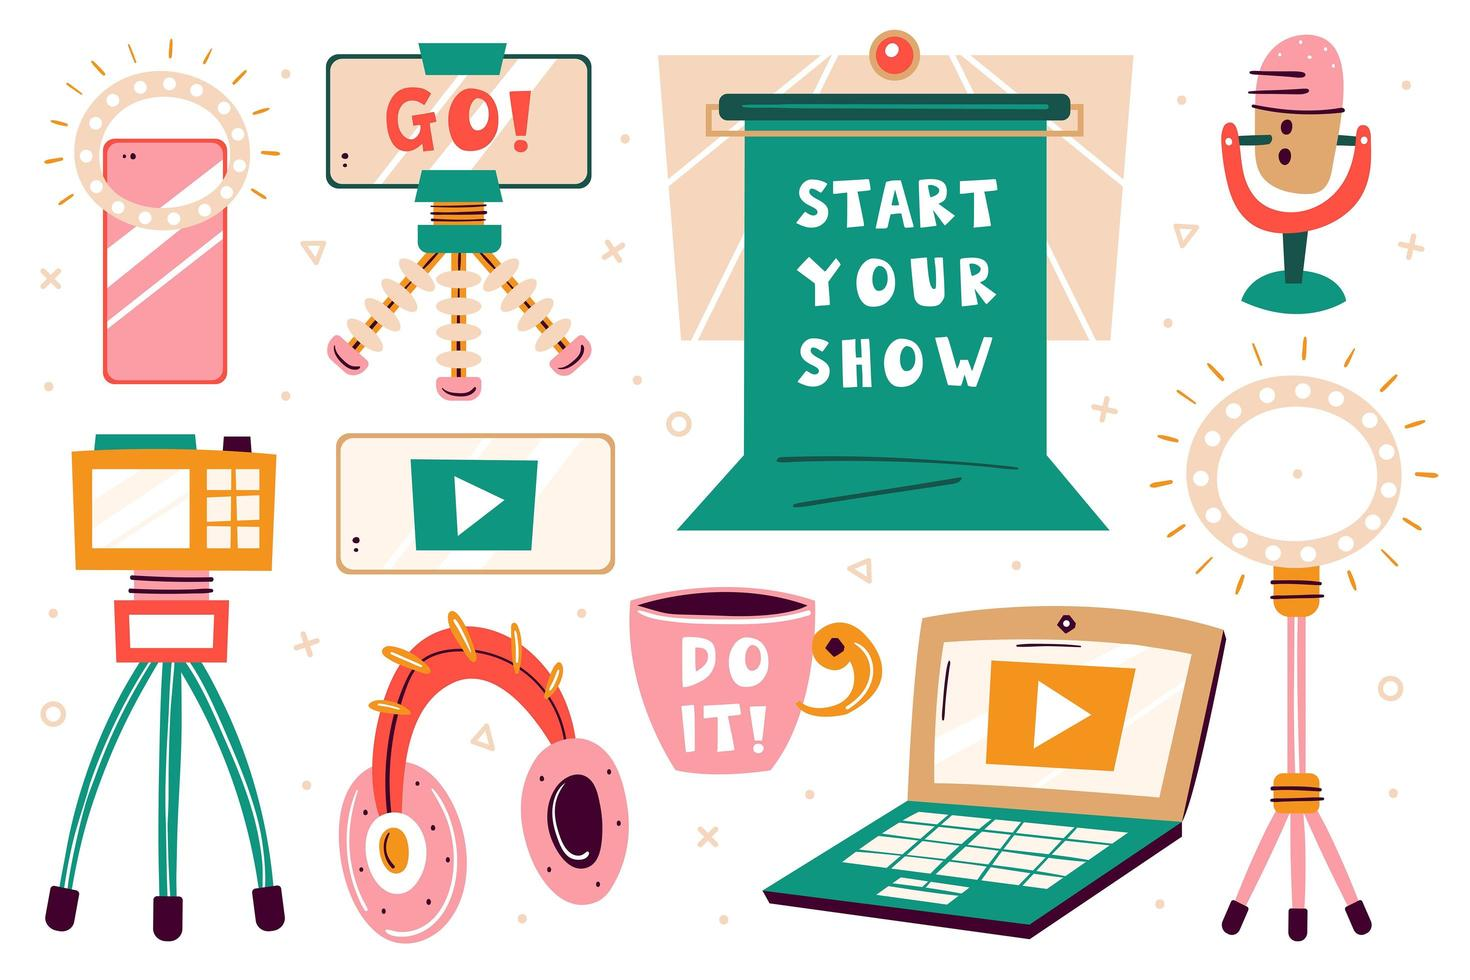 ''Start Your Show'' Image Set vector